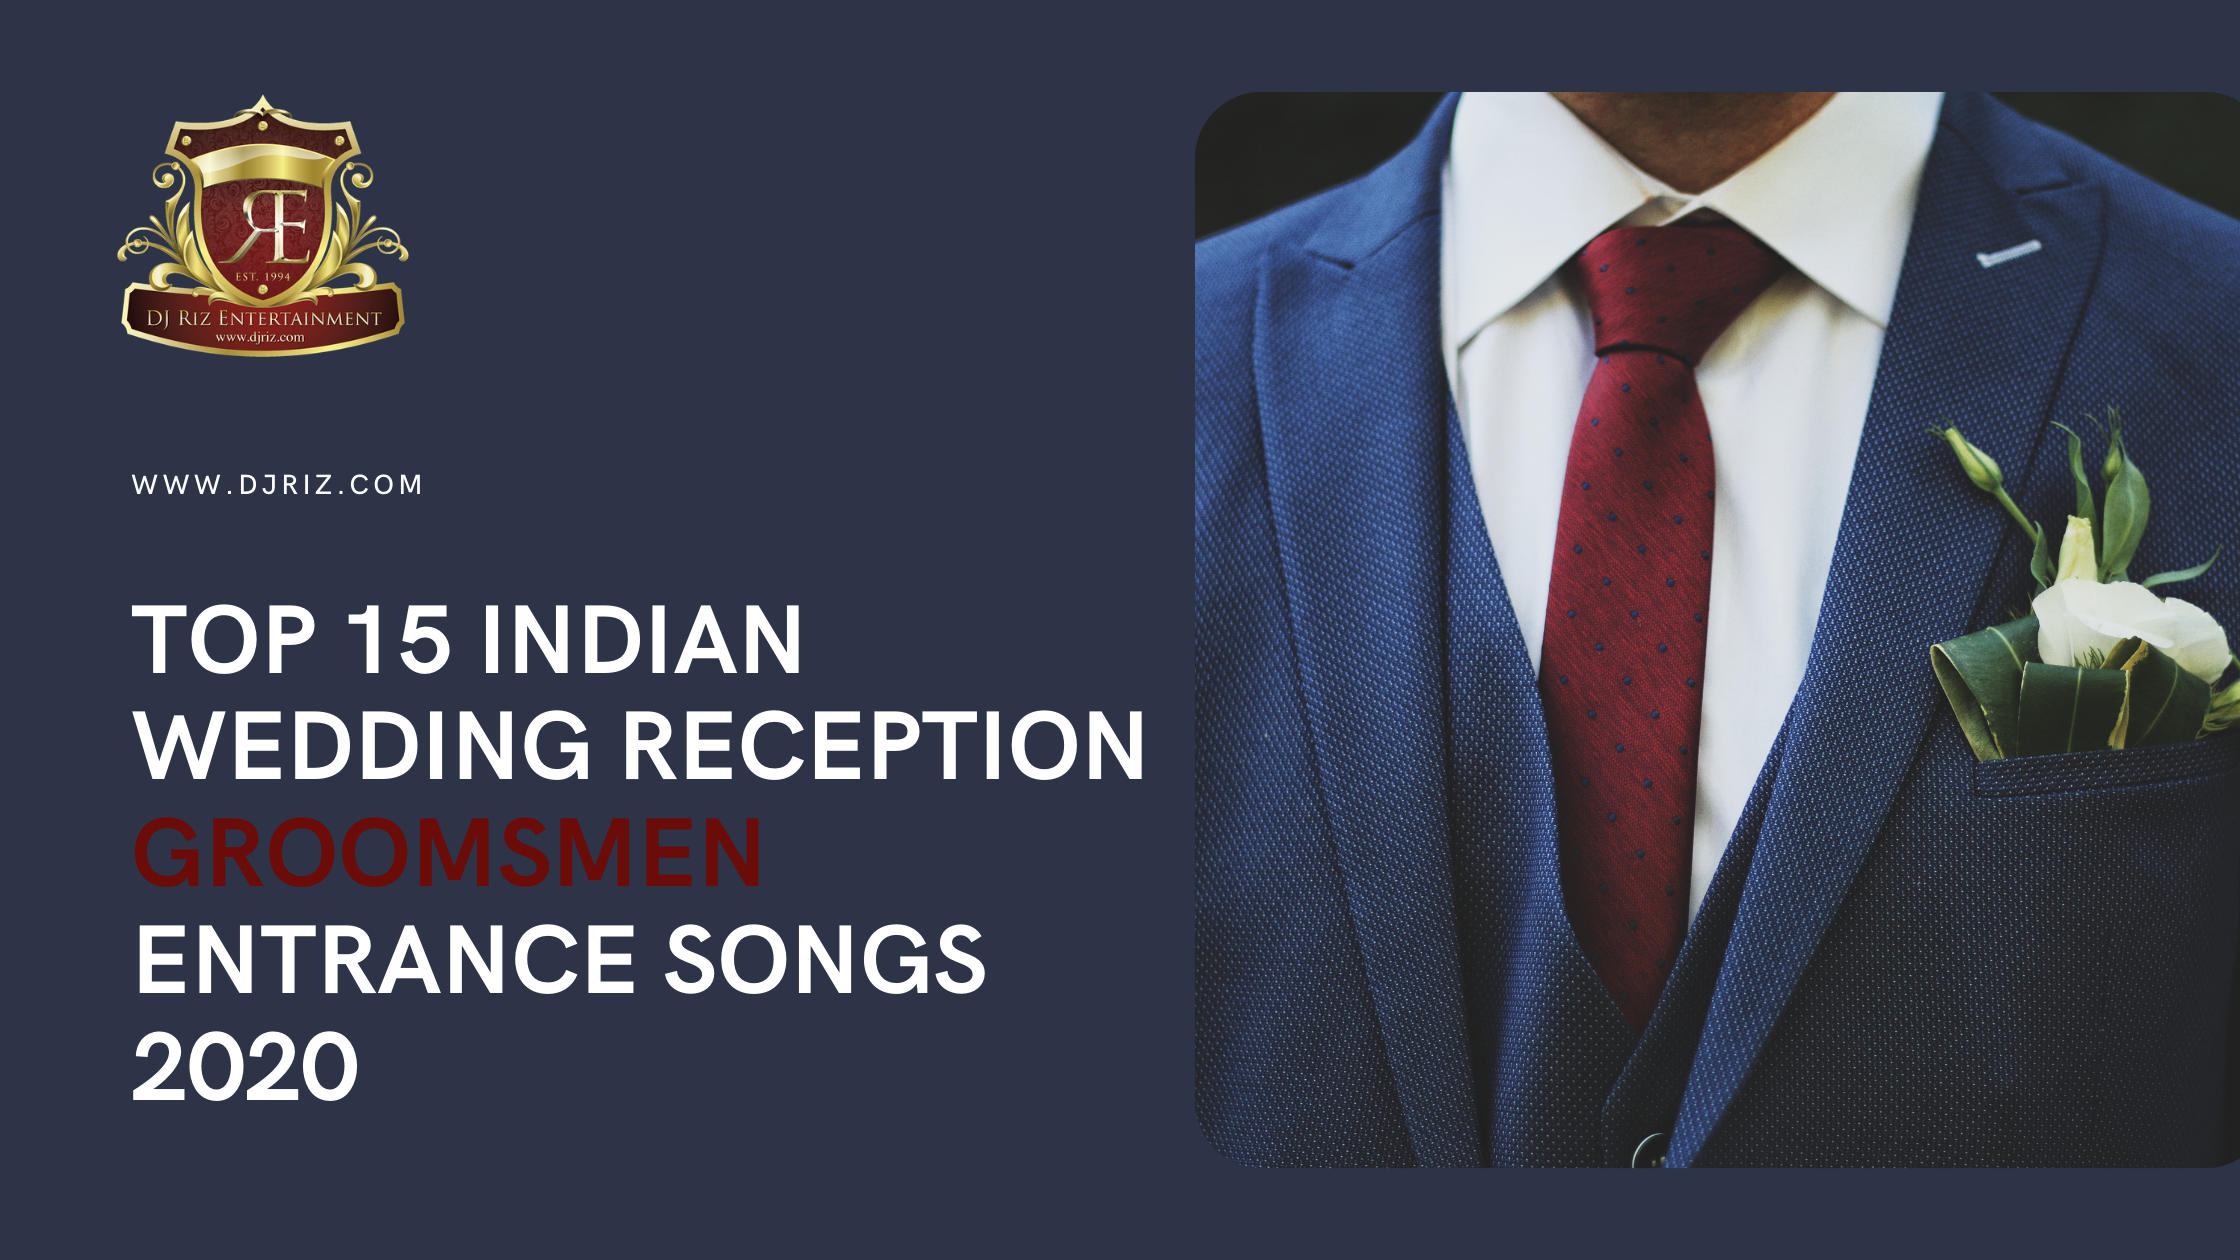 top 15 indian wedding reception groomsmen entrance songs